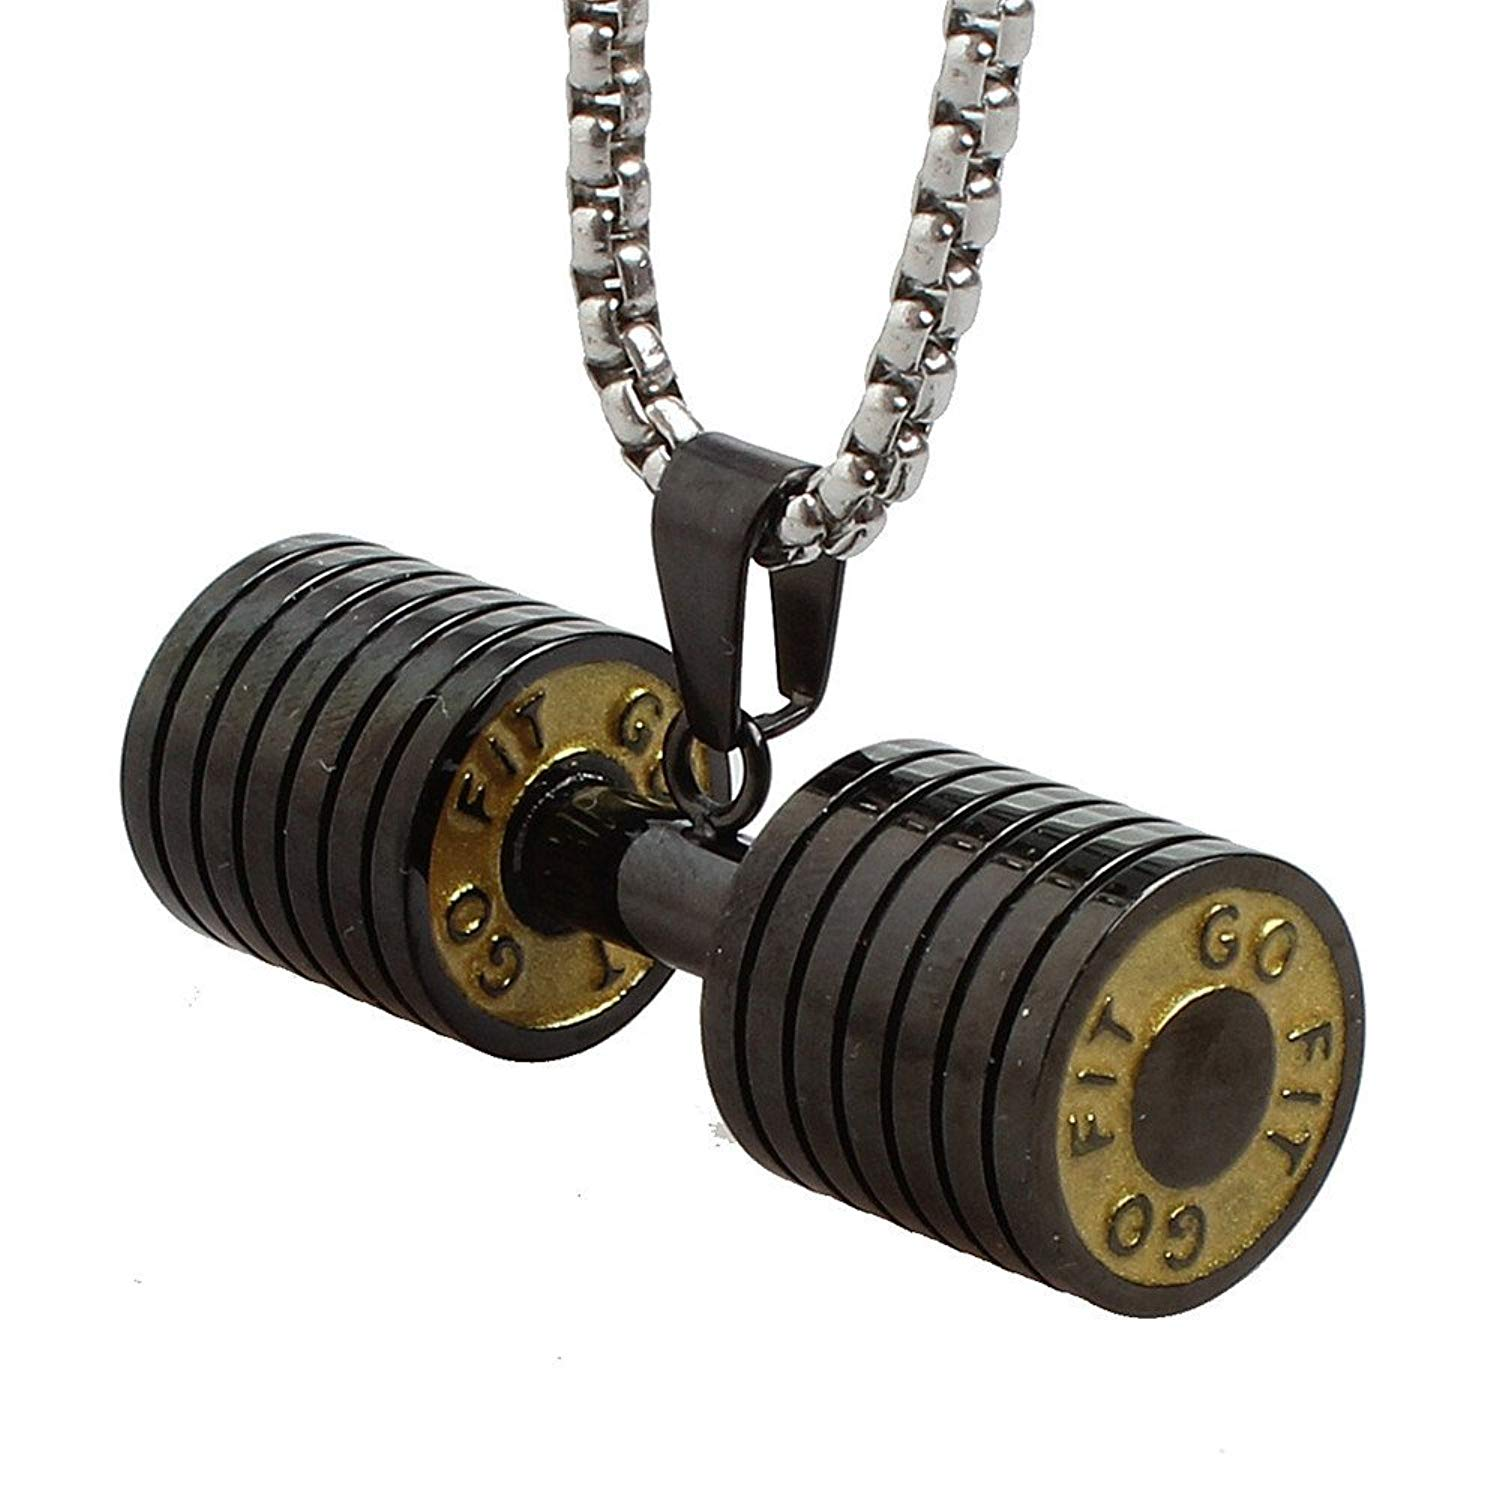 Free Weights Vs Barbell: Buy Dumbbell Necklace 18 Inch Chain Dumbbell Charm Barbell